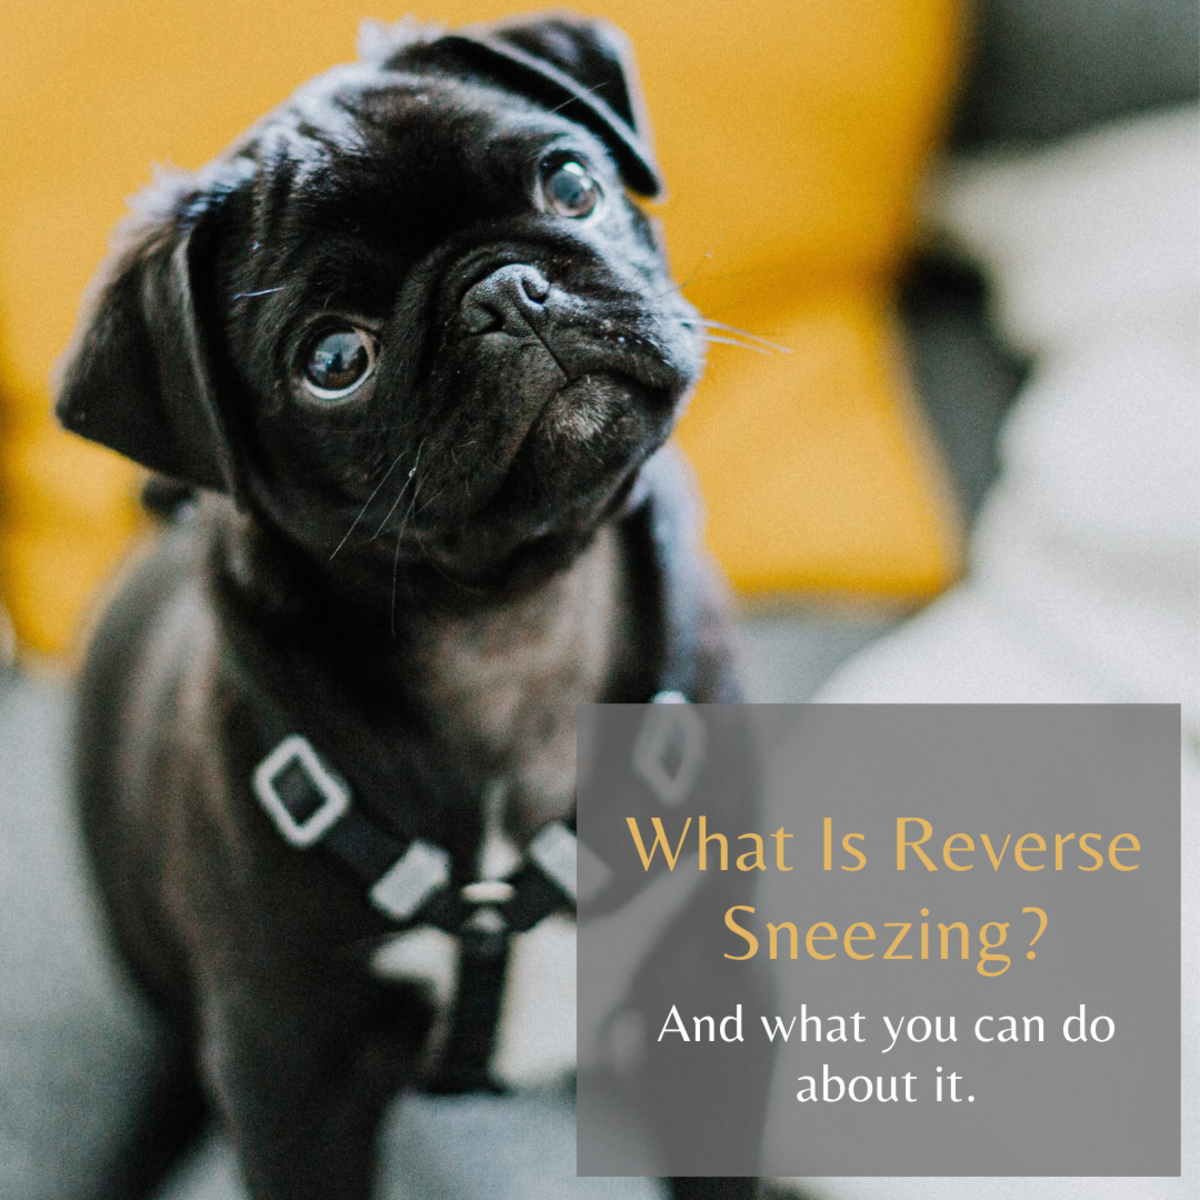 Learn how to help your dog if they are reverse sneezing.